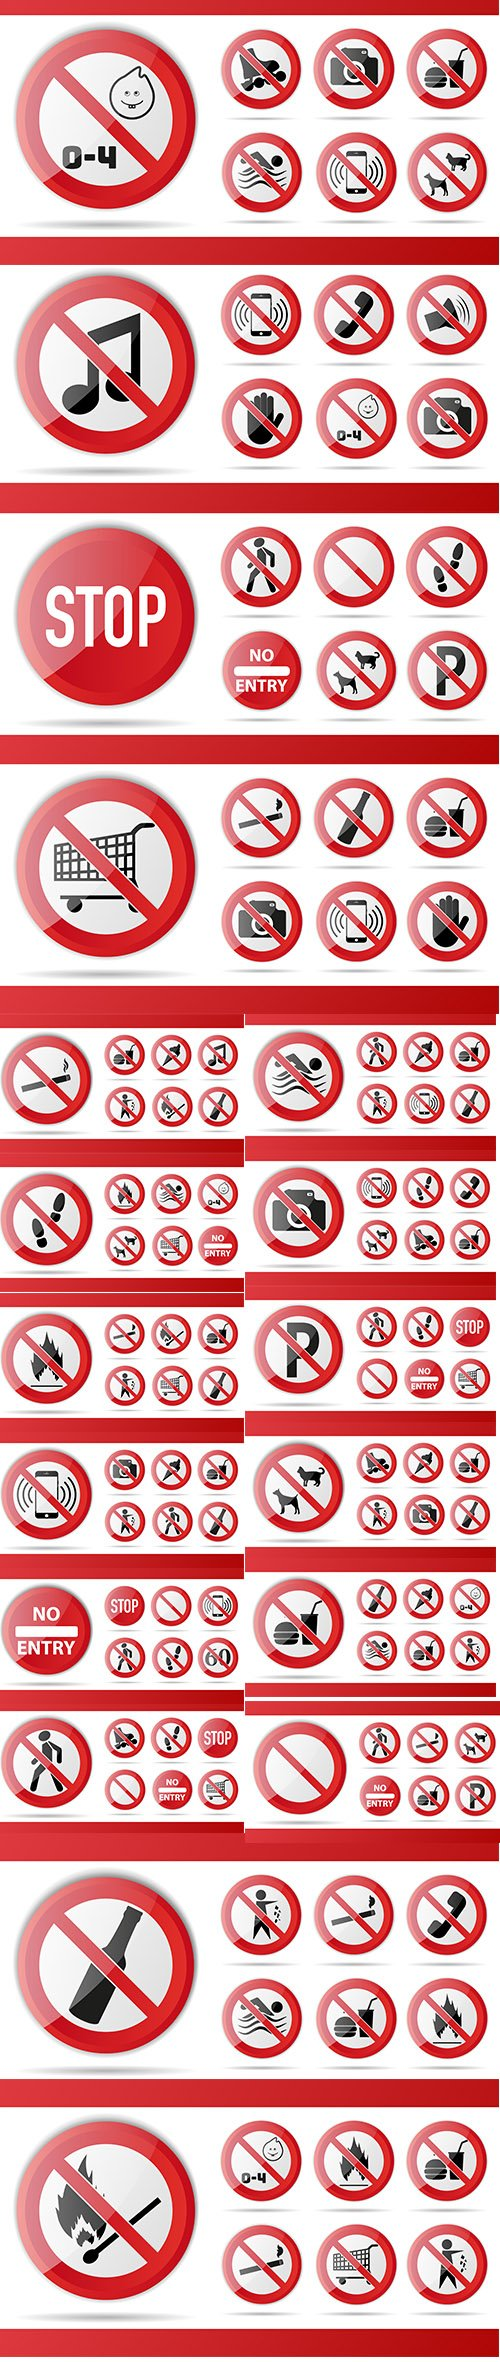 Red Prohibition Sign Object